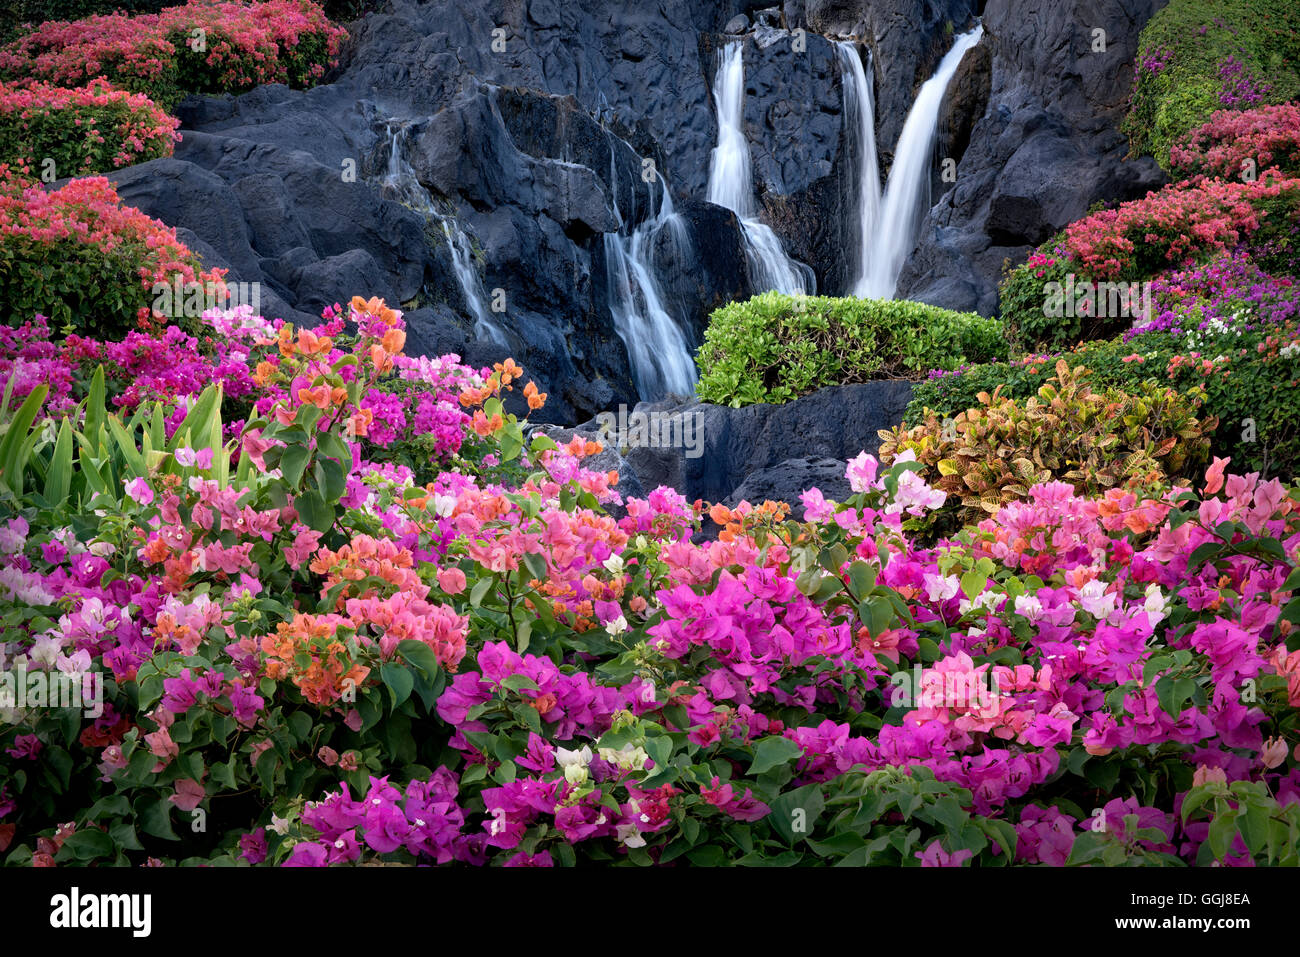 Bougainvillea flowers and waterfall at garden in Kauai, Hawaii - Stock Image